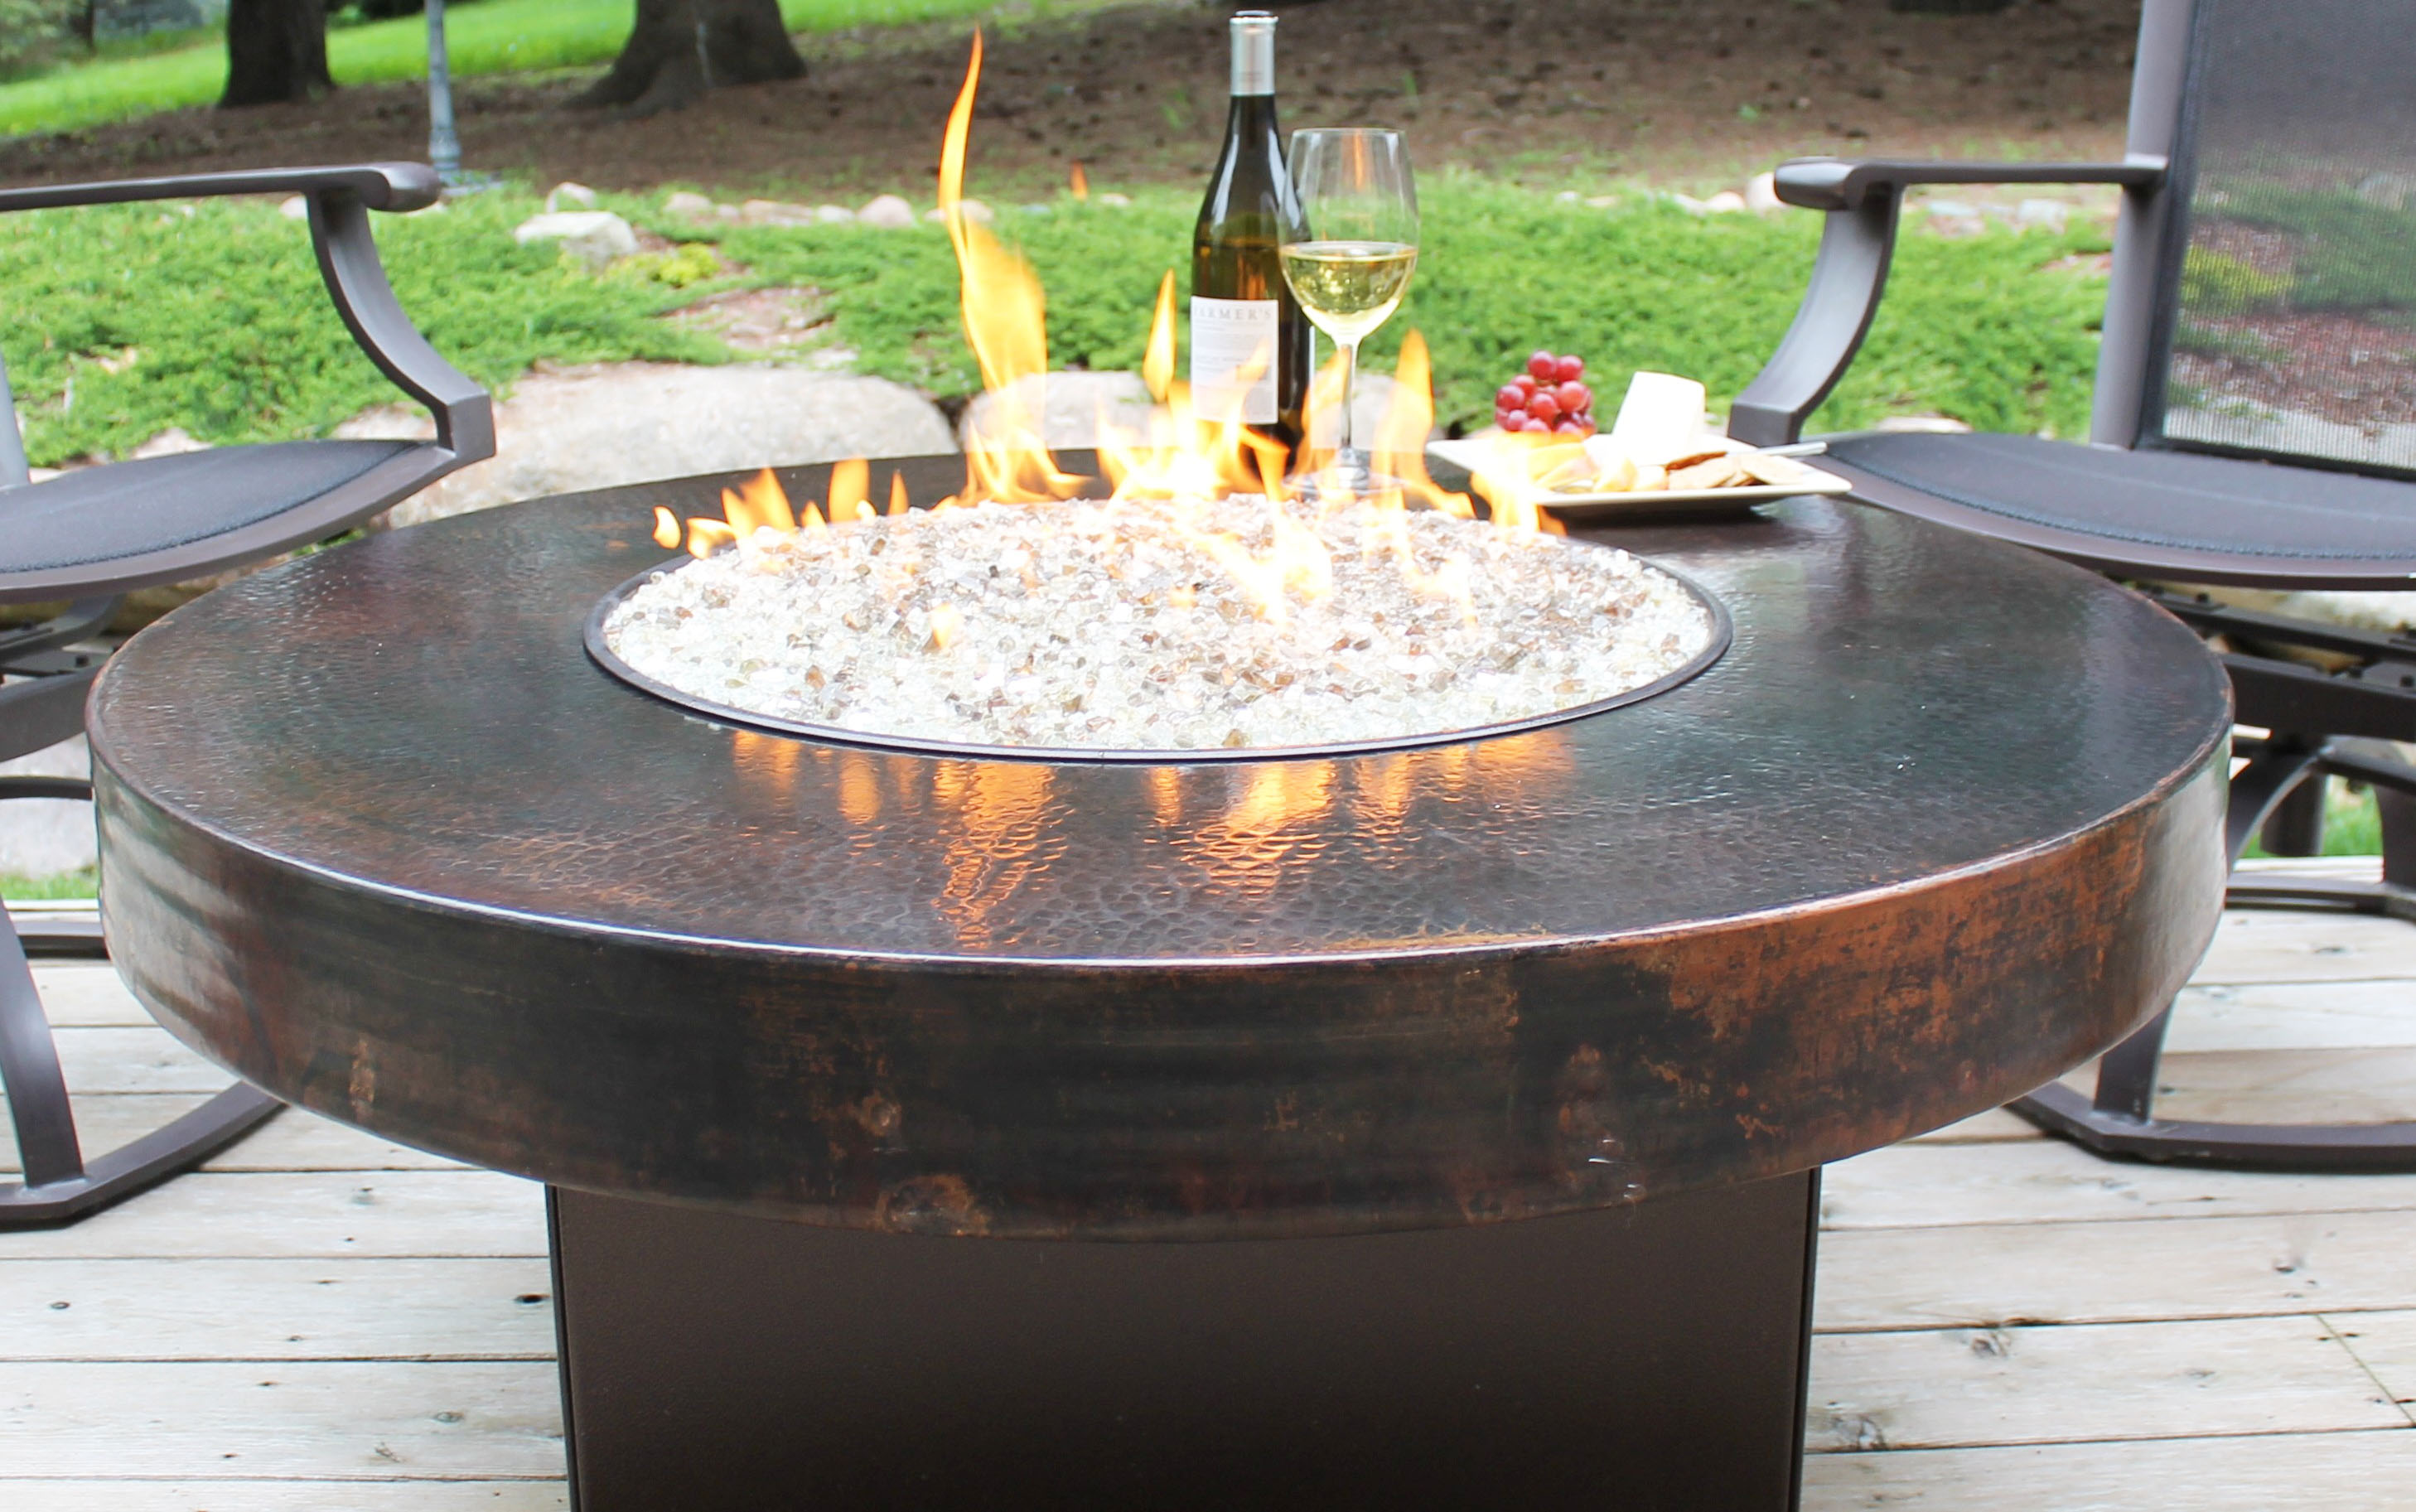 How to make tabletop fire pit kit diy roy home design for Fire pit plans